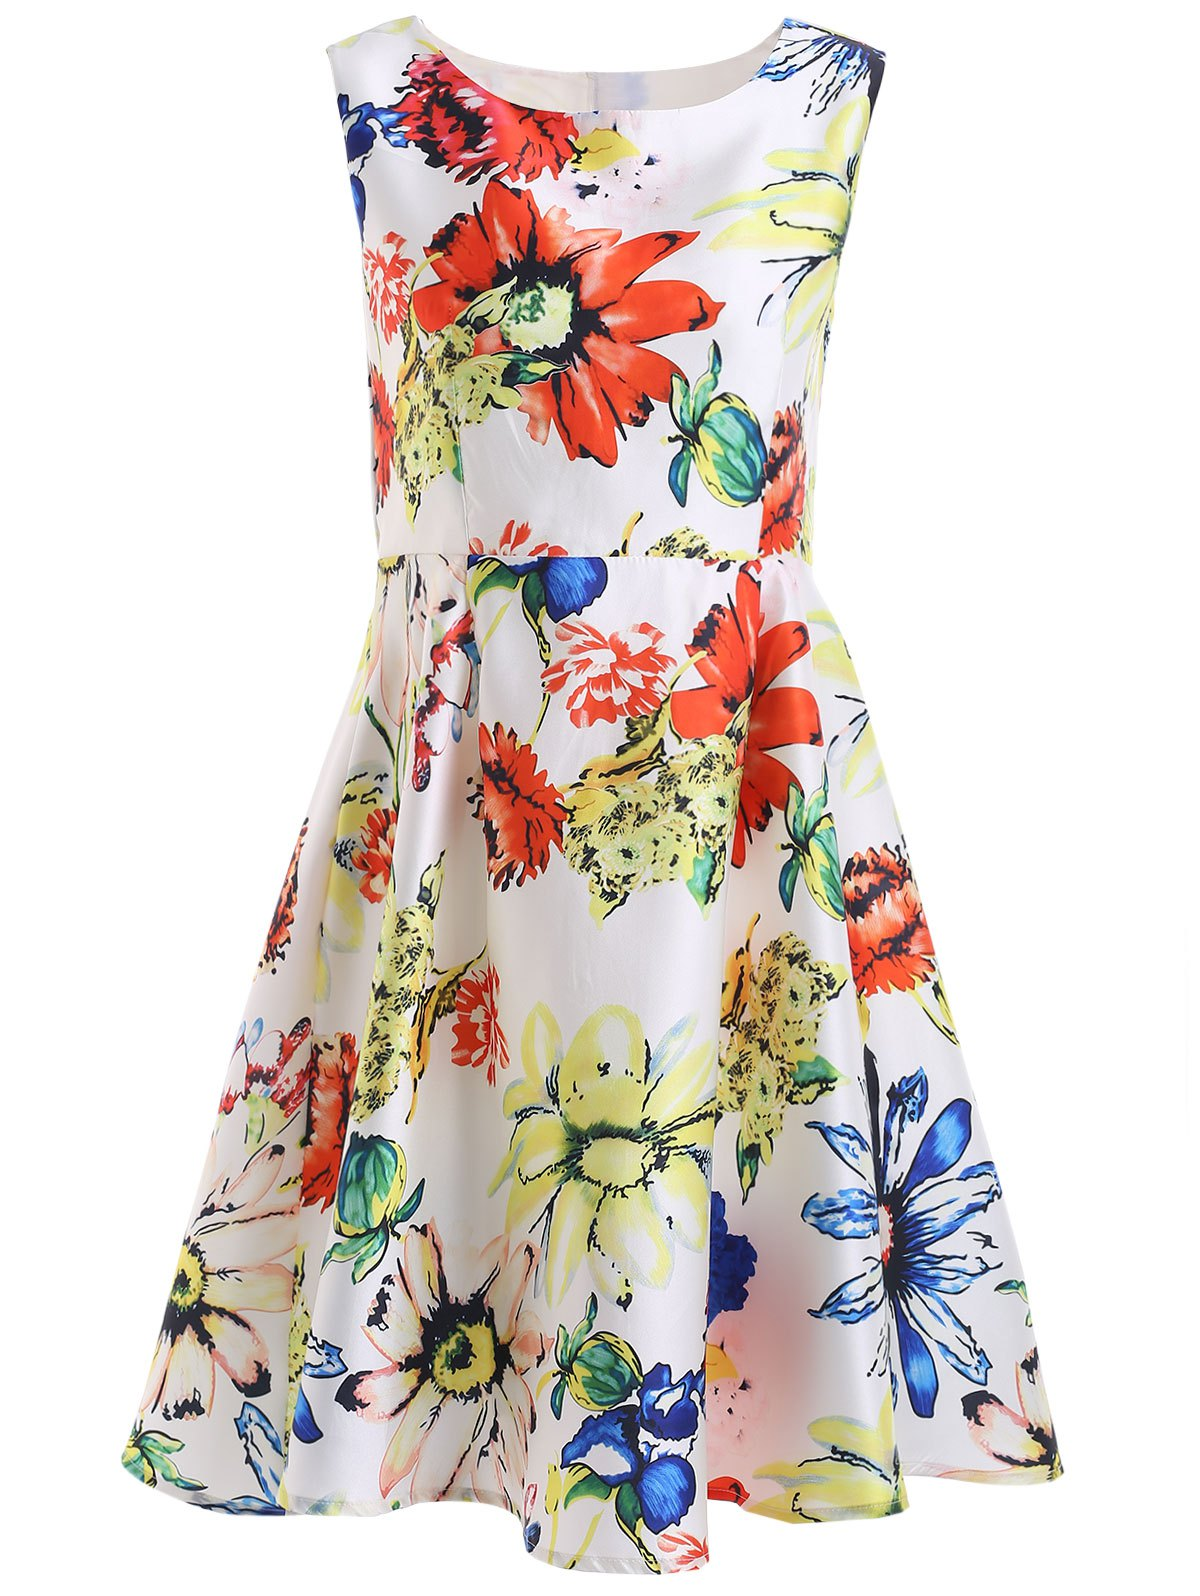 Sweet Floral Pattern Zippered Mini Dress